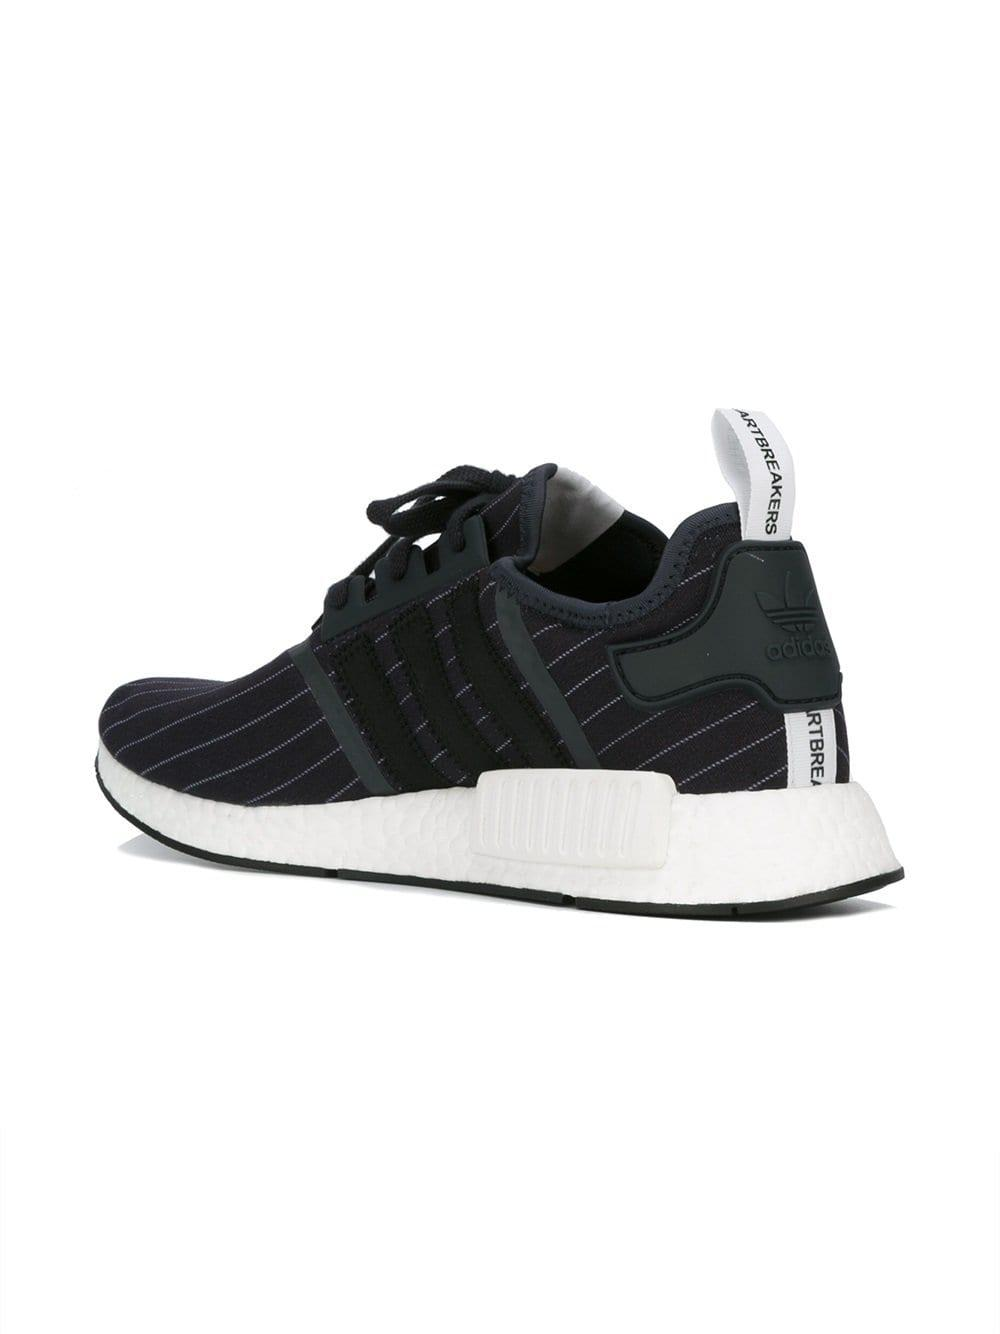 f140a7705 Adidas - Black Originals By Bedwin   The Heartbreakers  nmd R1 Bedwin   Sneakers for. View fullscreen